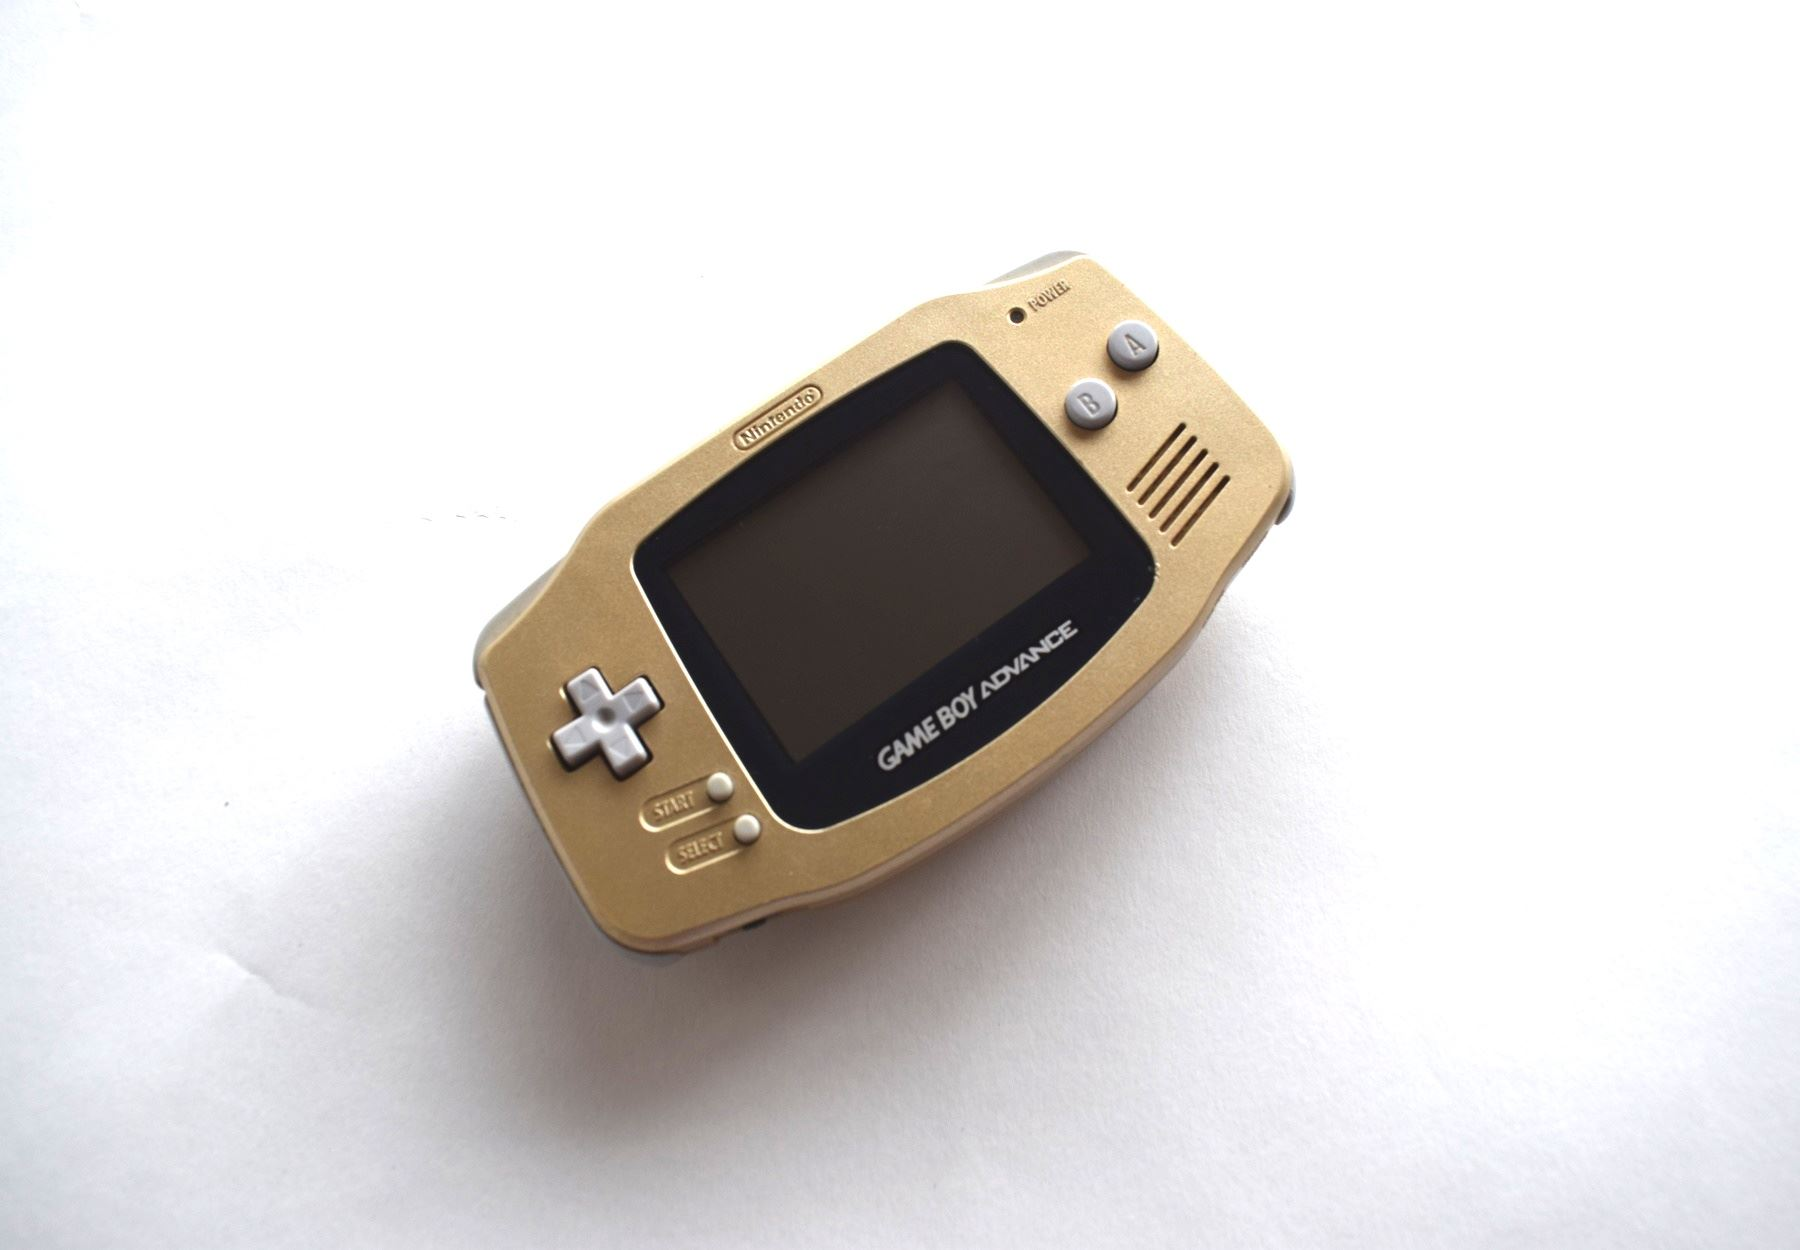 Nintendo-Gameboy-Advance-GBA-Handheld-Console-System-8-Colours-Available thumbnail 21